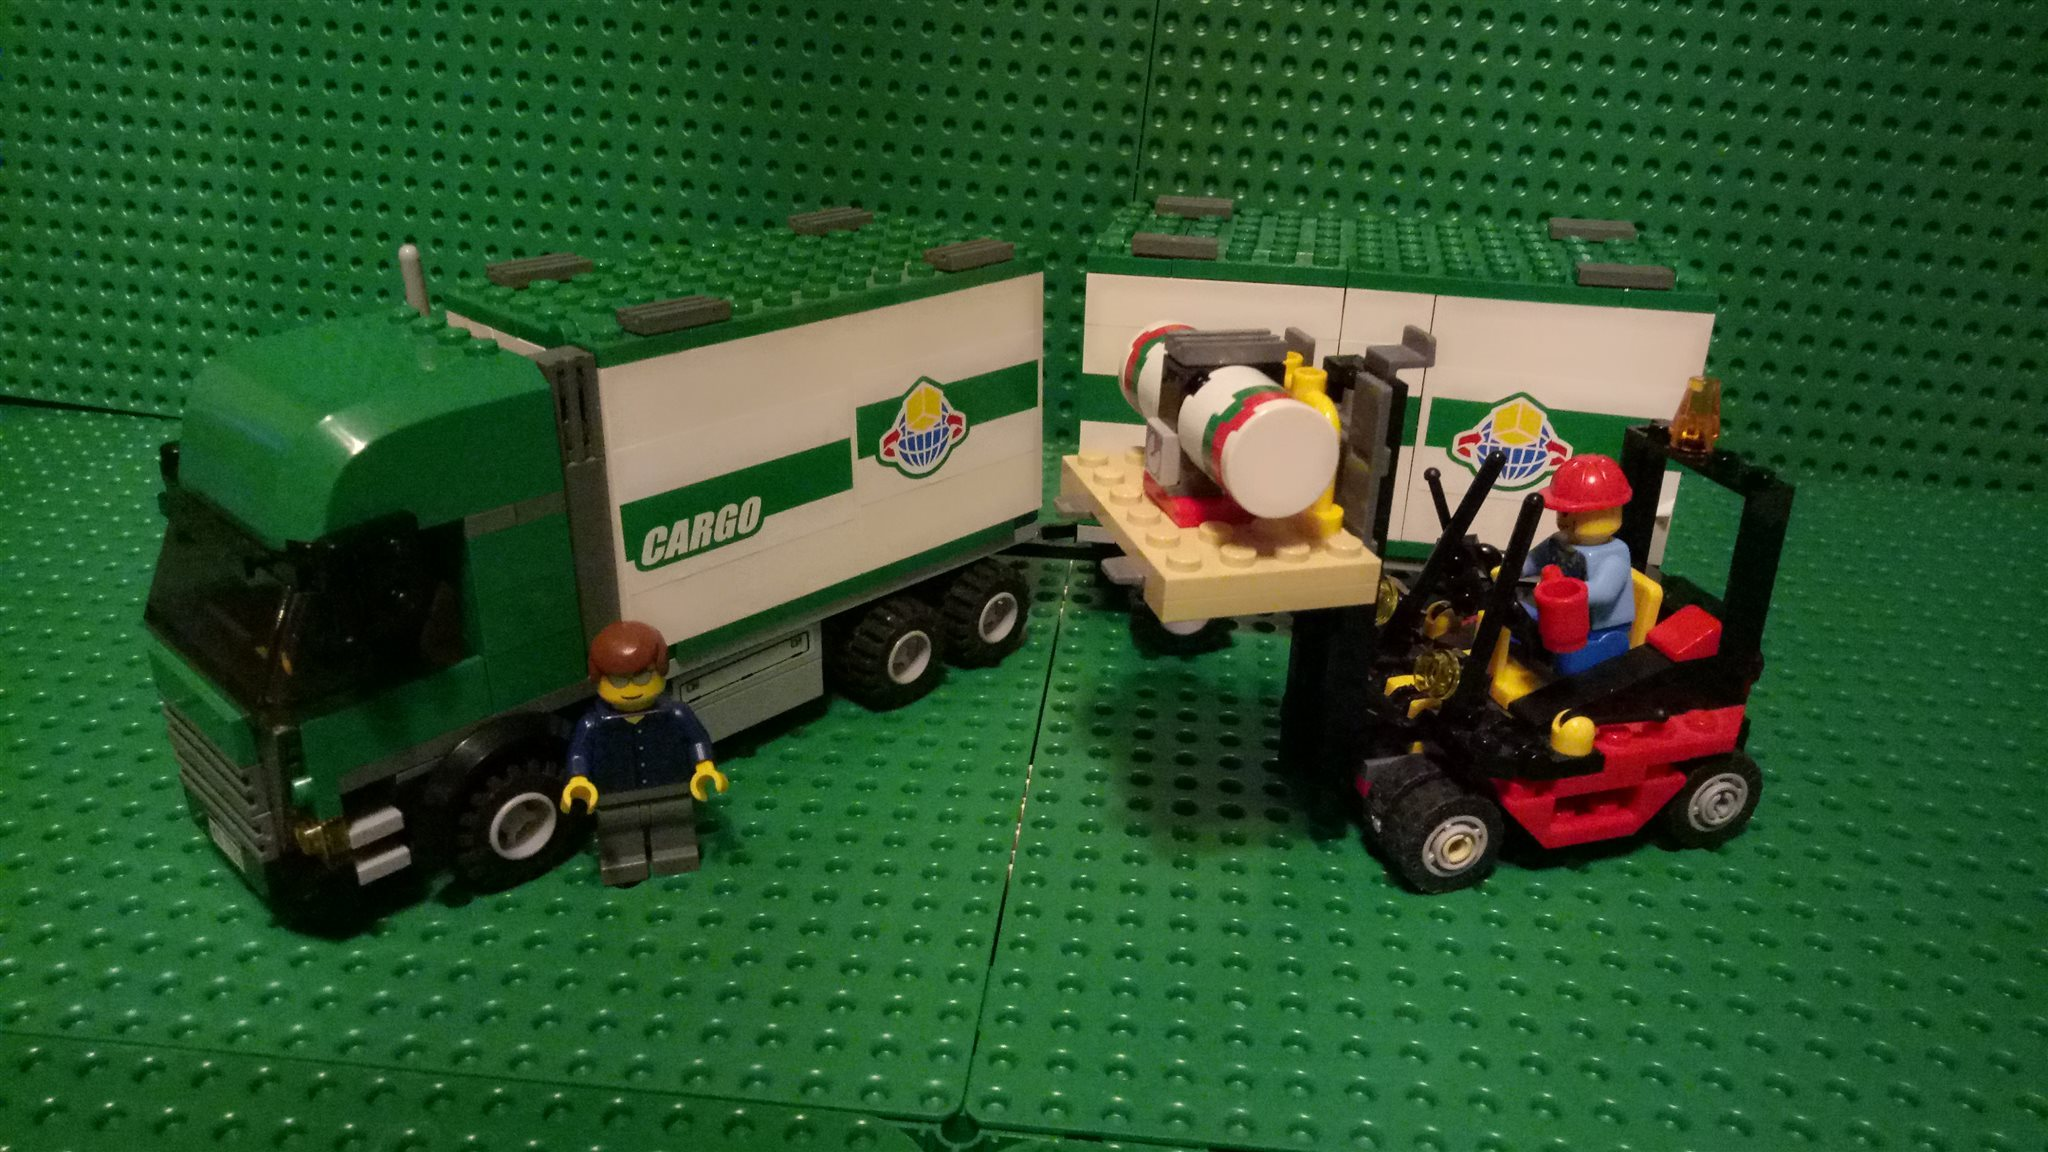 Lego City Town - Cargo Truck & forklift 7733